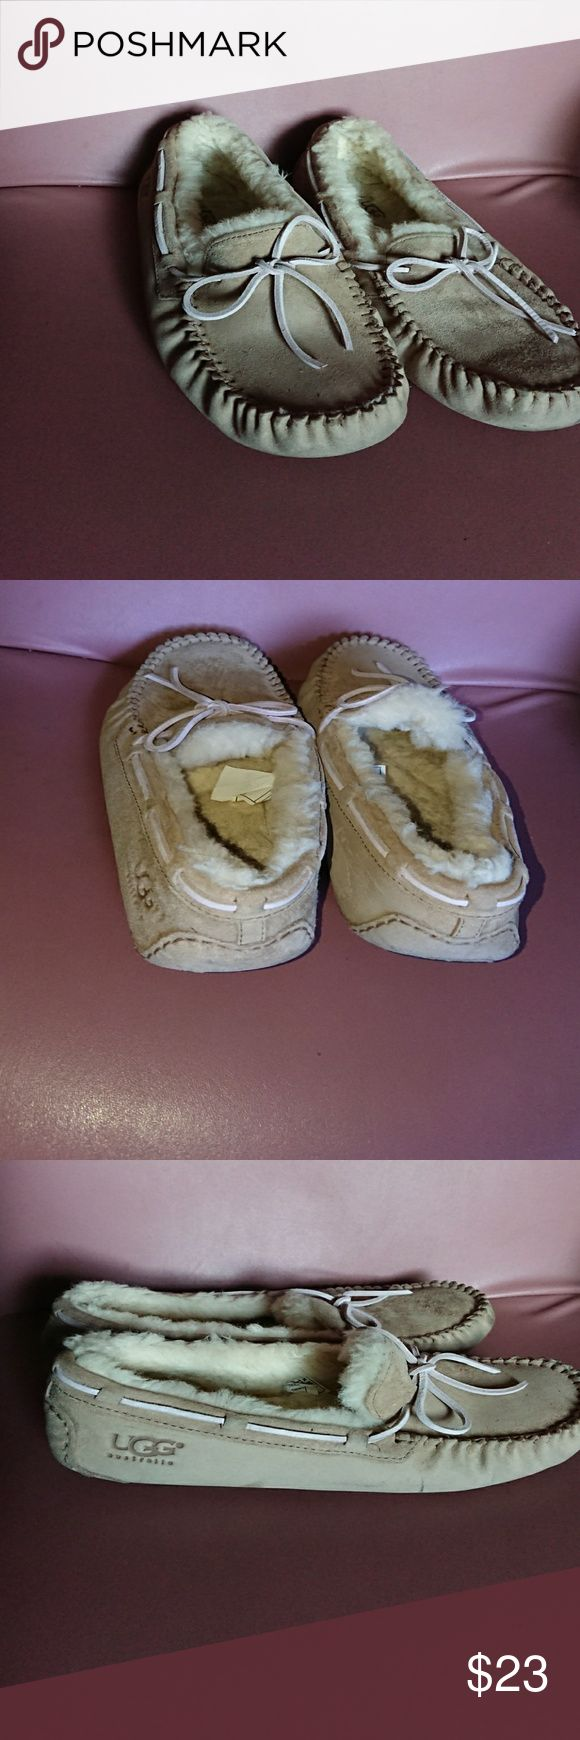 Ugg 8 shearling slippers tan suede moccasins used No defects, minor front wear. UGG Shoes Slippers